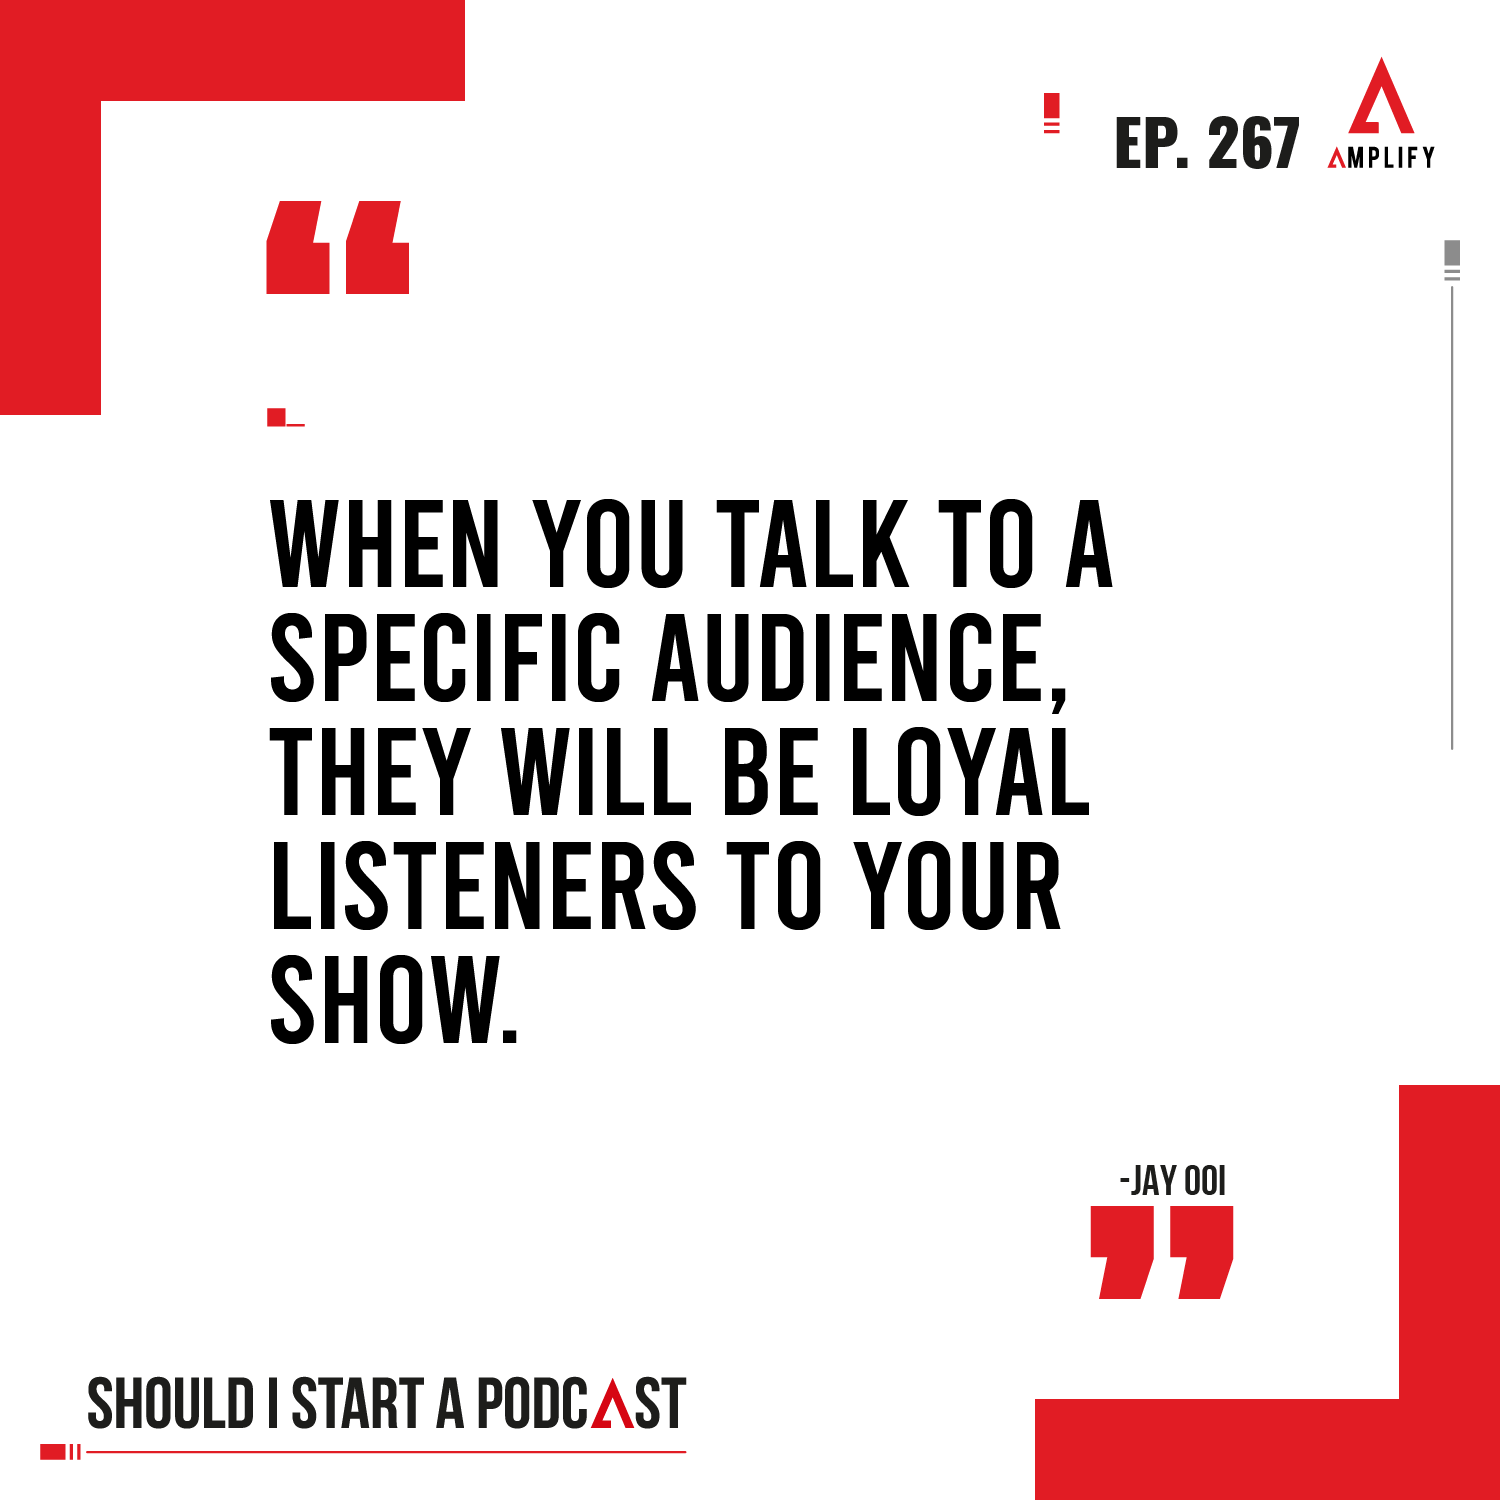 decorative image qith the quote When you talk to a specific audience, they will be loyal listeners to your show. by Jay Ooi